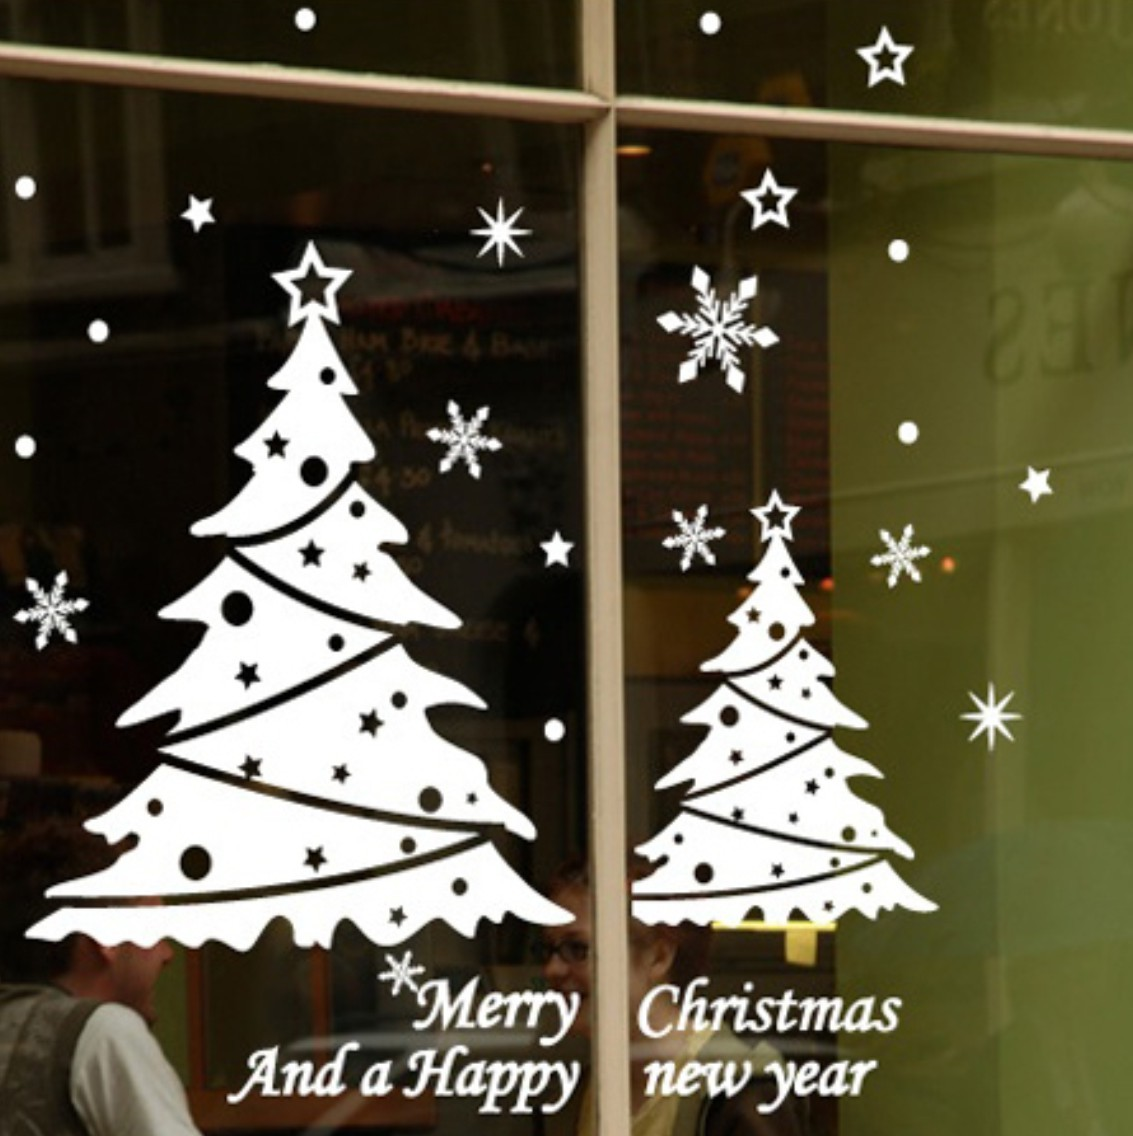 Romantic Tree Snowflake Wall Stickers Fashion Window Sticker Christmas Day Decor - Home Shop store